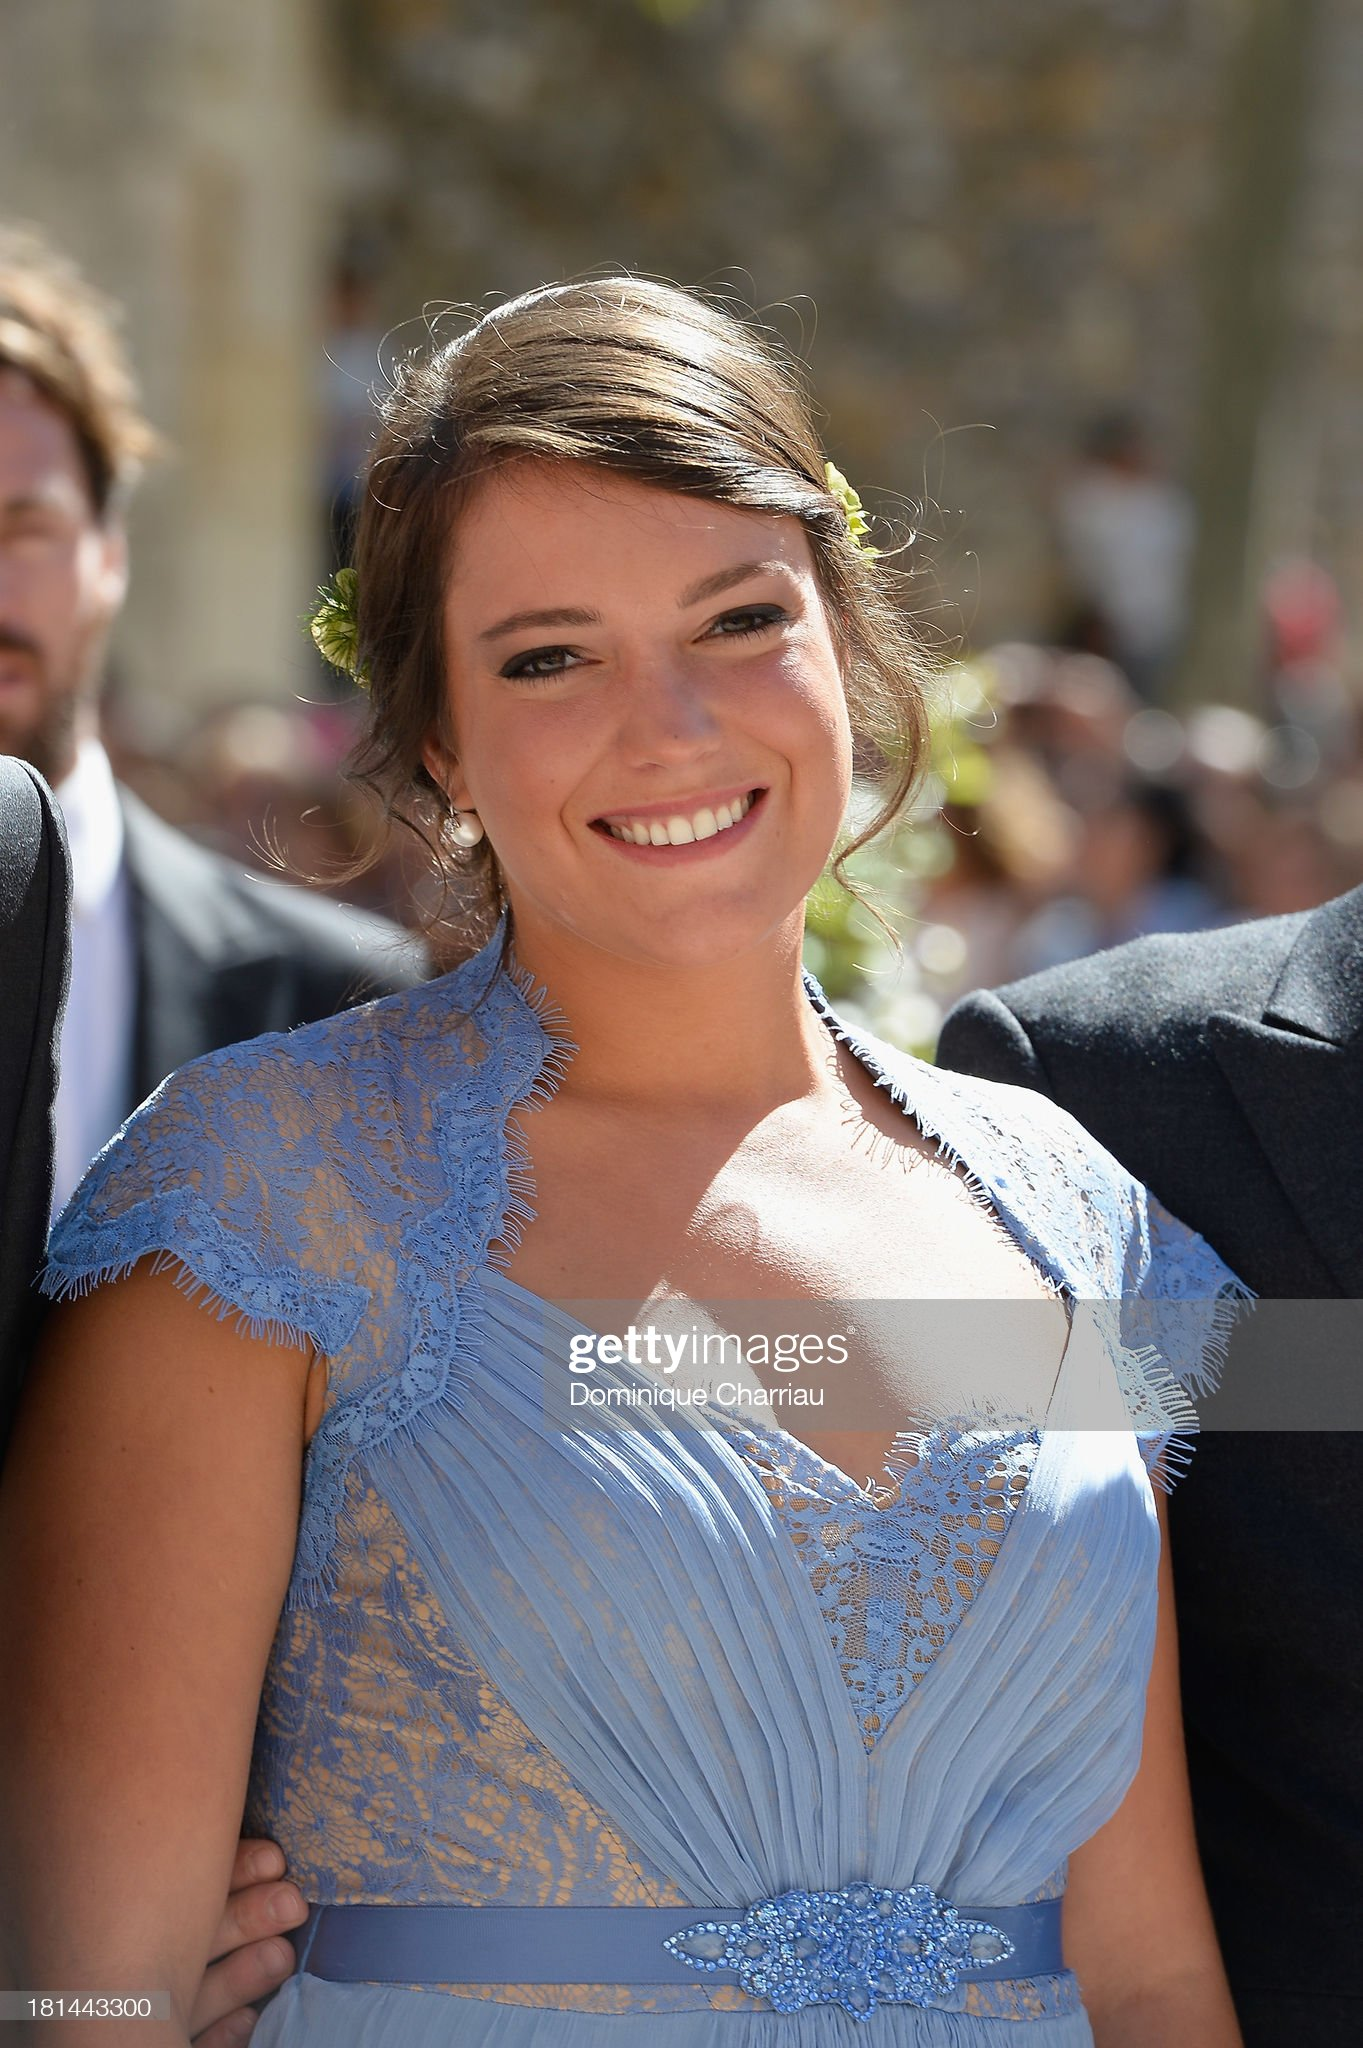 Religious Wedding Of Prince Felix Of Luxembourg & Claire Lademacher : News Photo